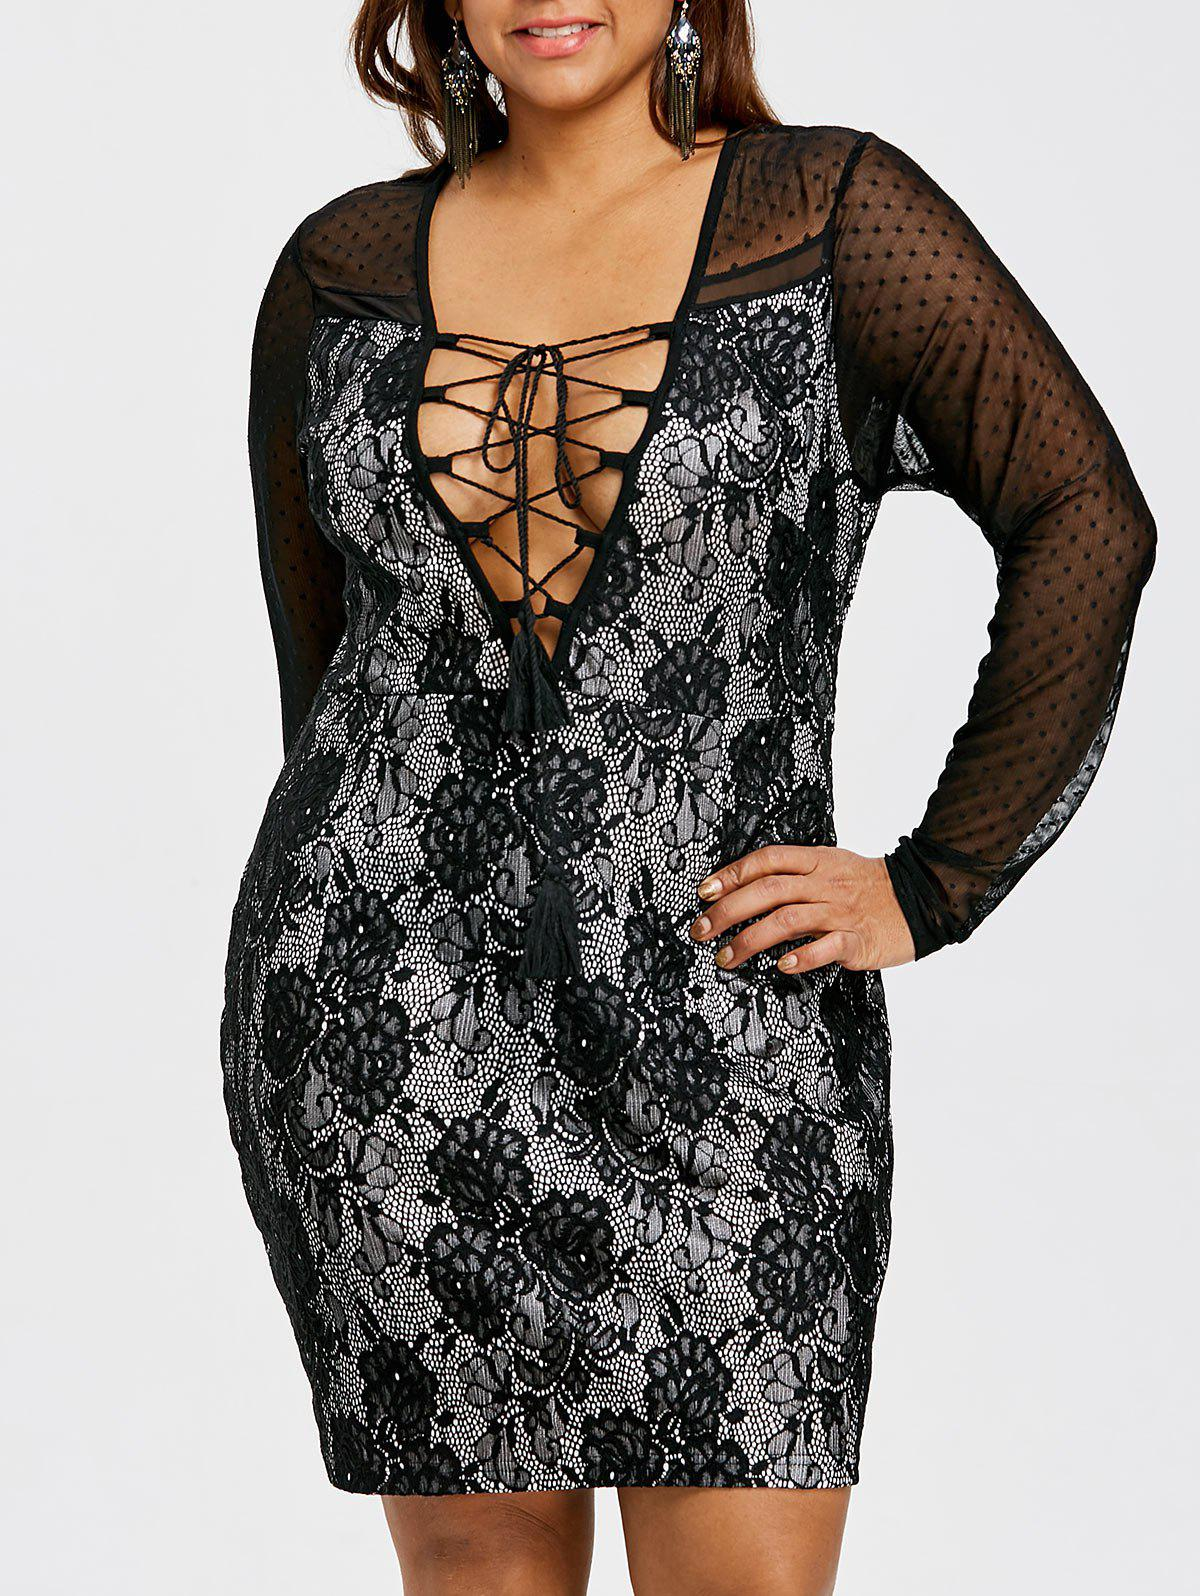 Chic Lace Up Mesh Insert Plus Size Dress